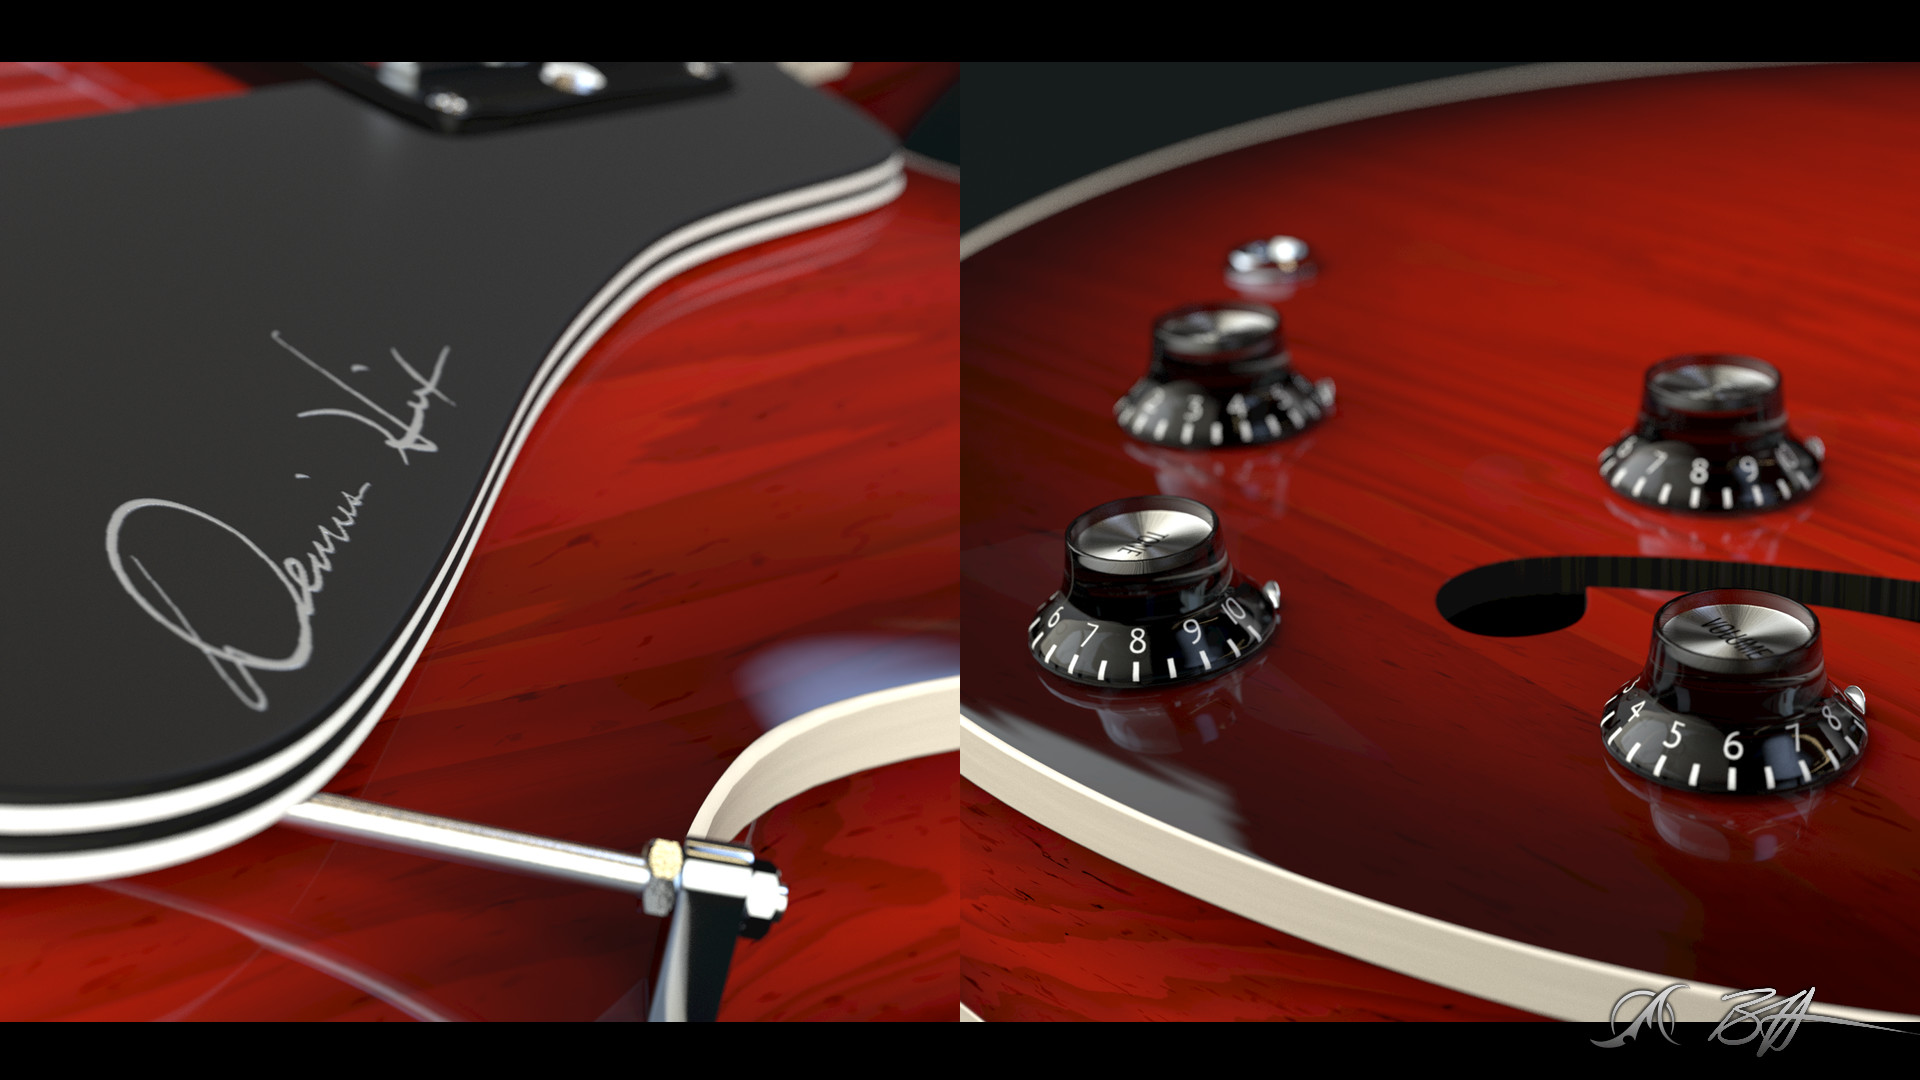 Pick guard and control knob closeups